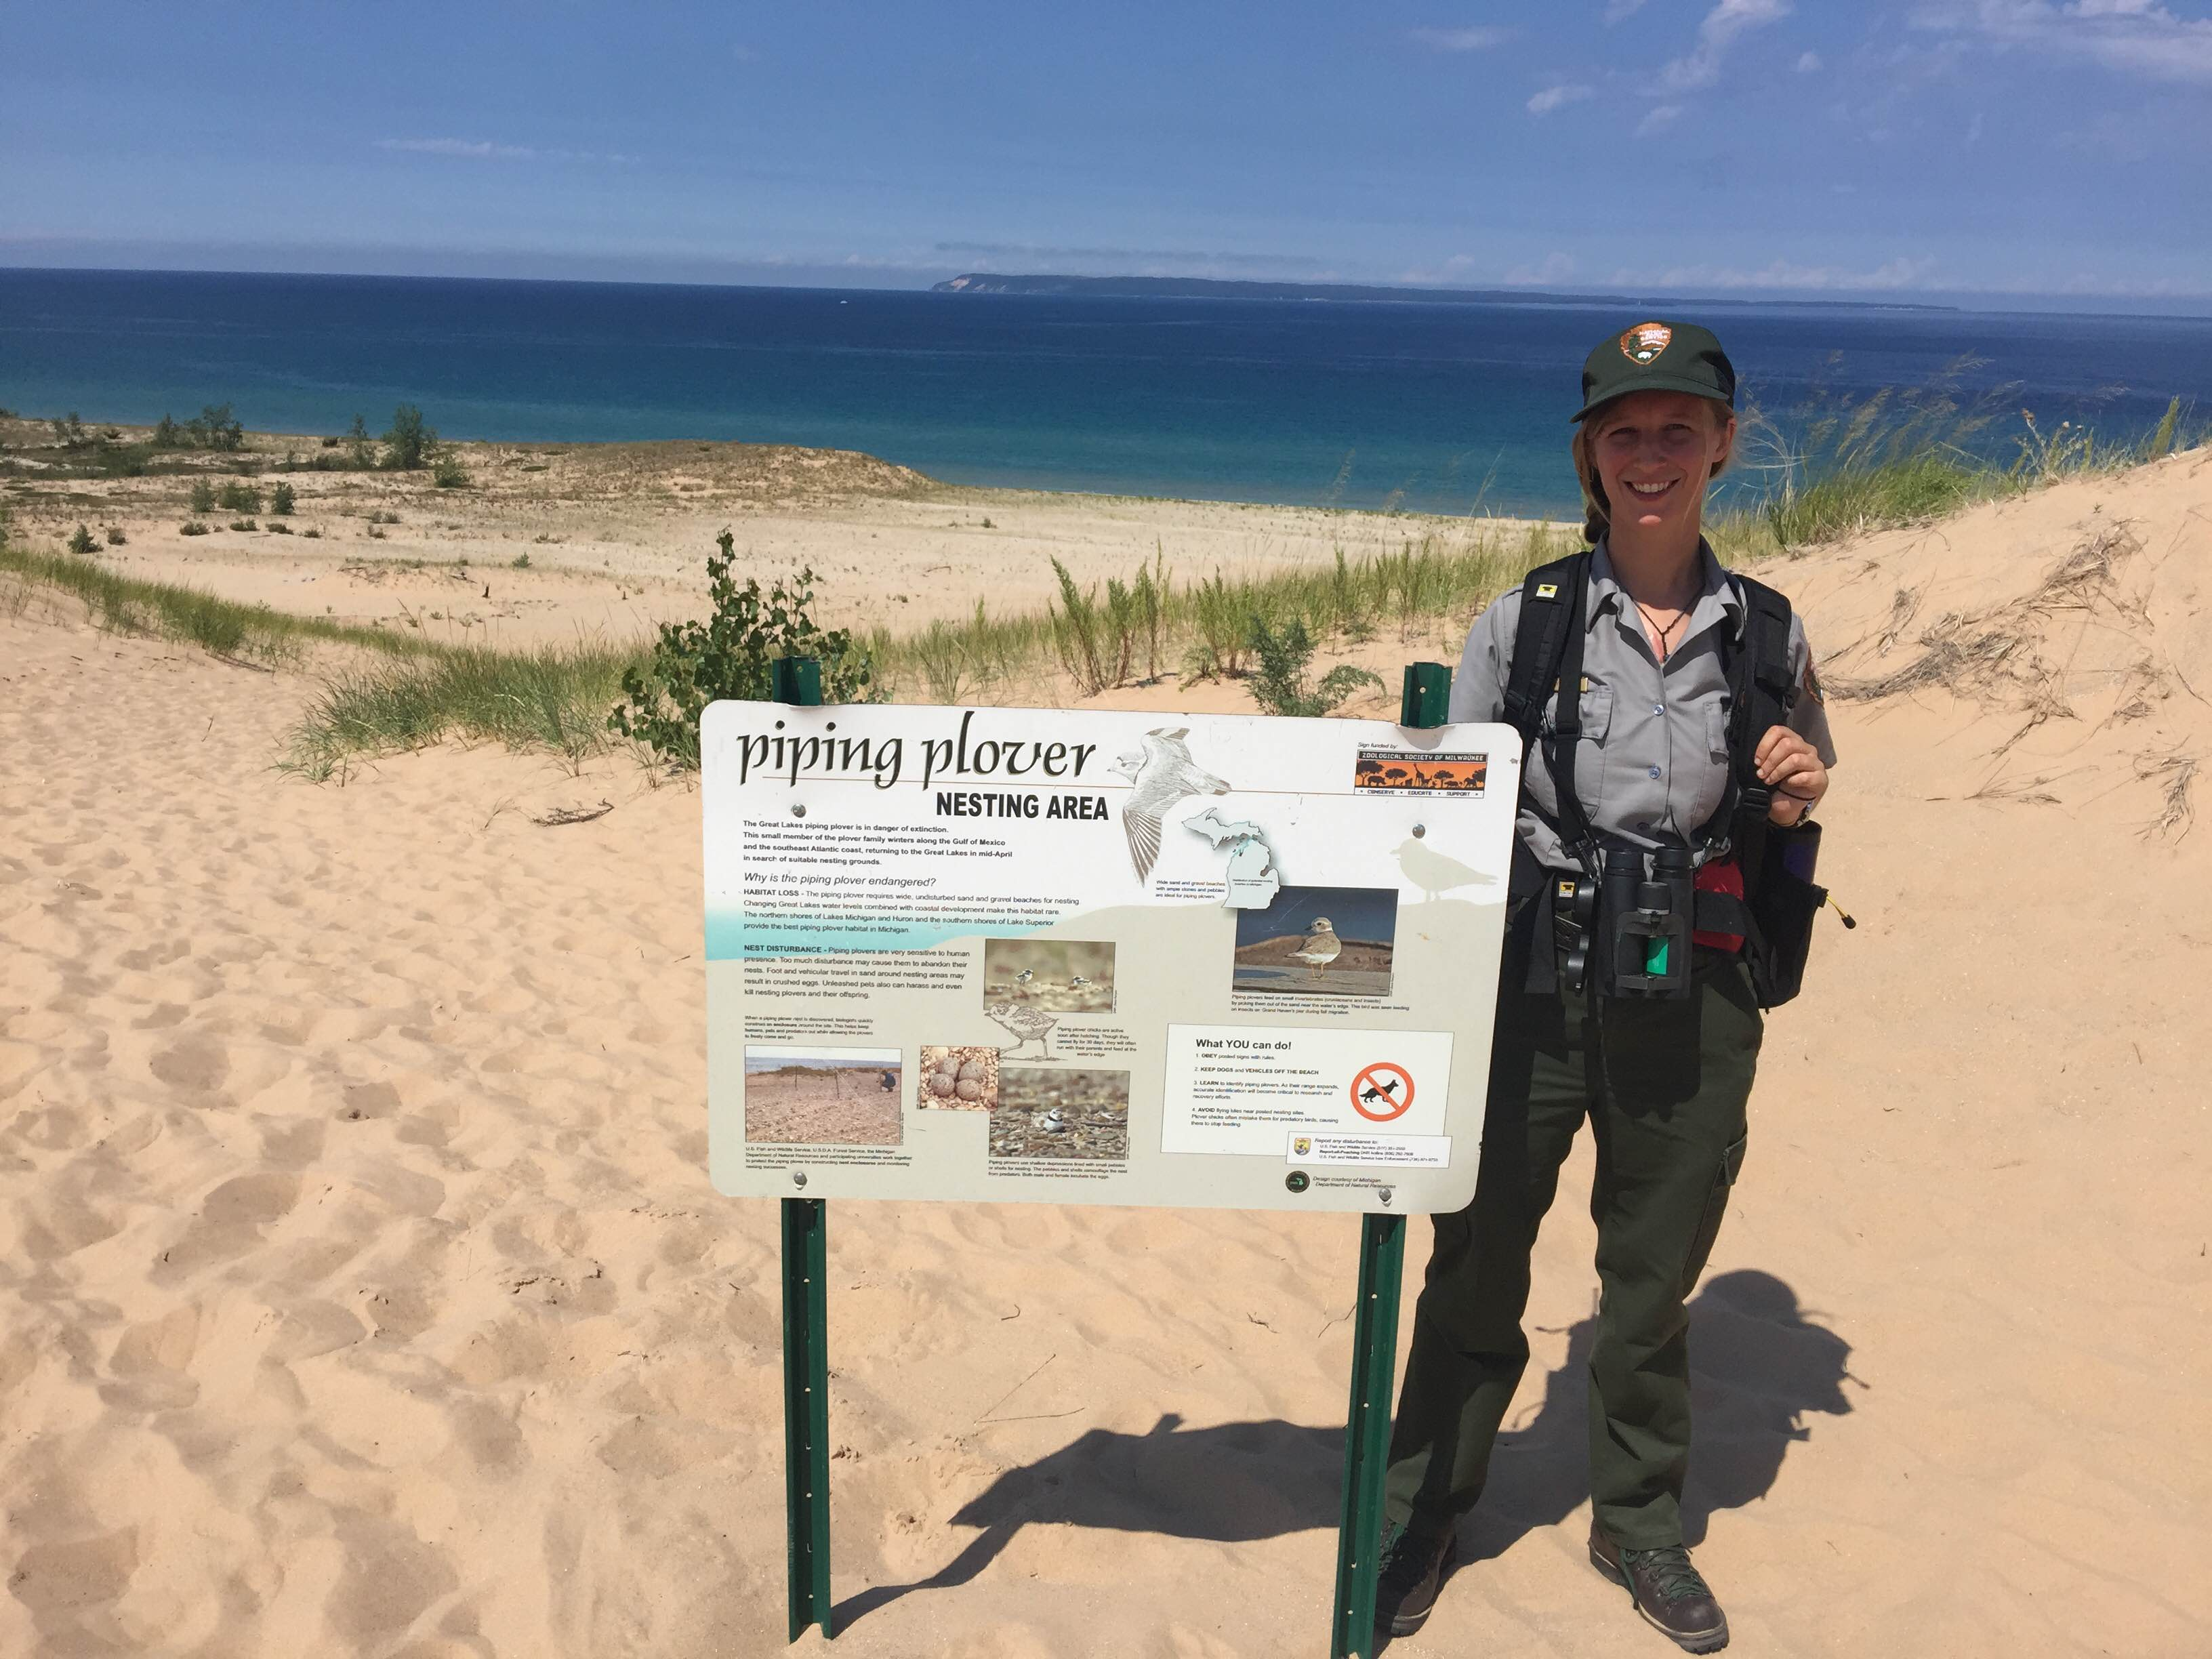 Piping plovers flock to local beaches